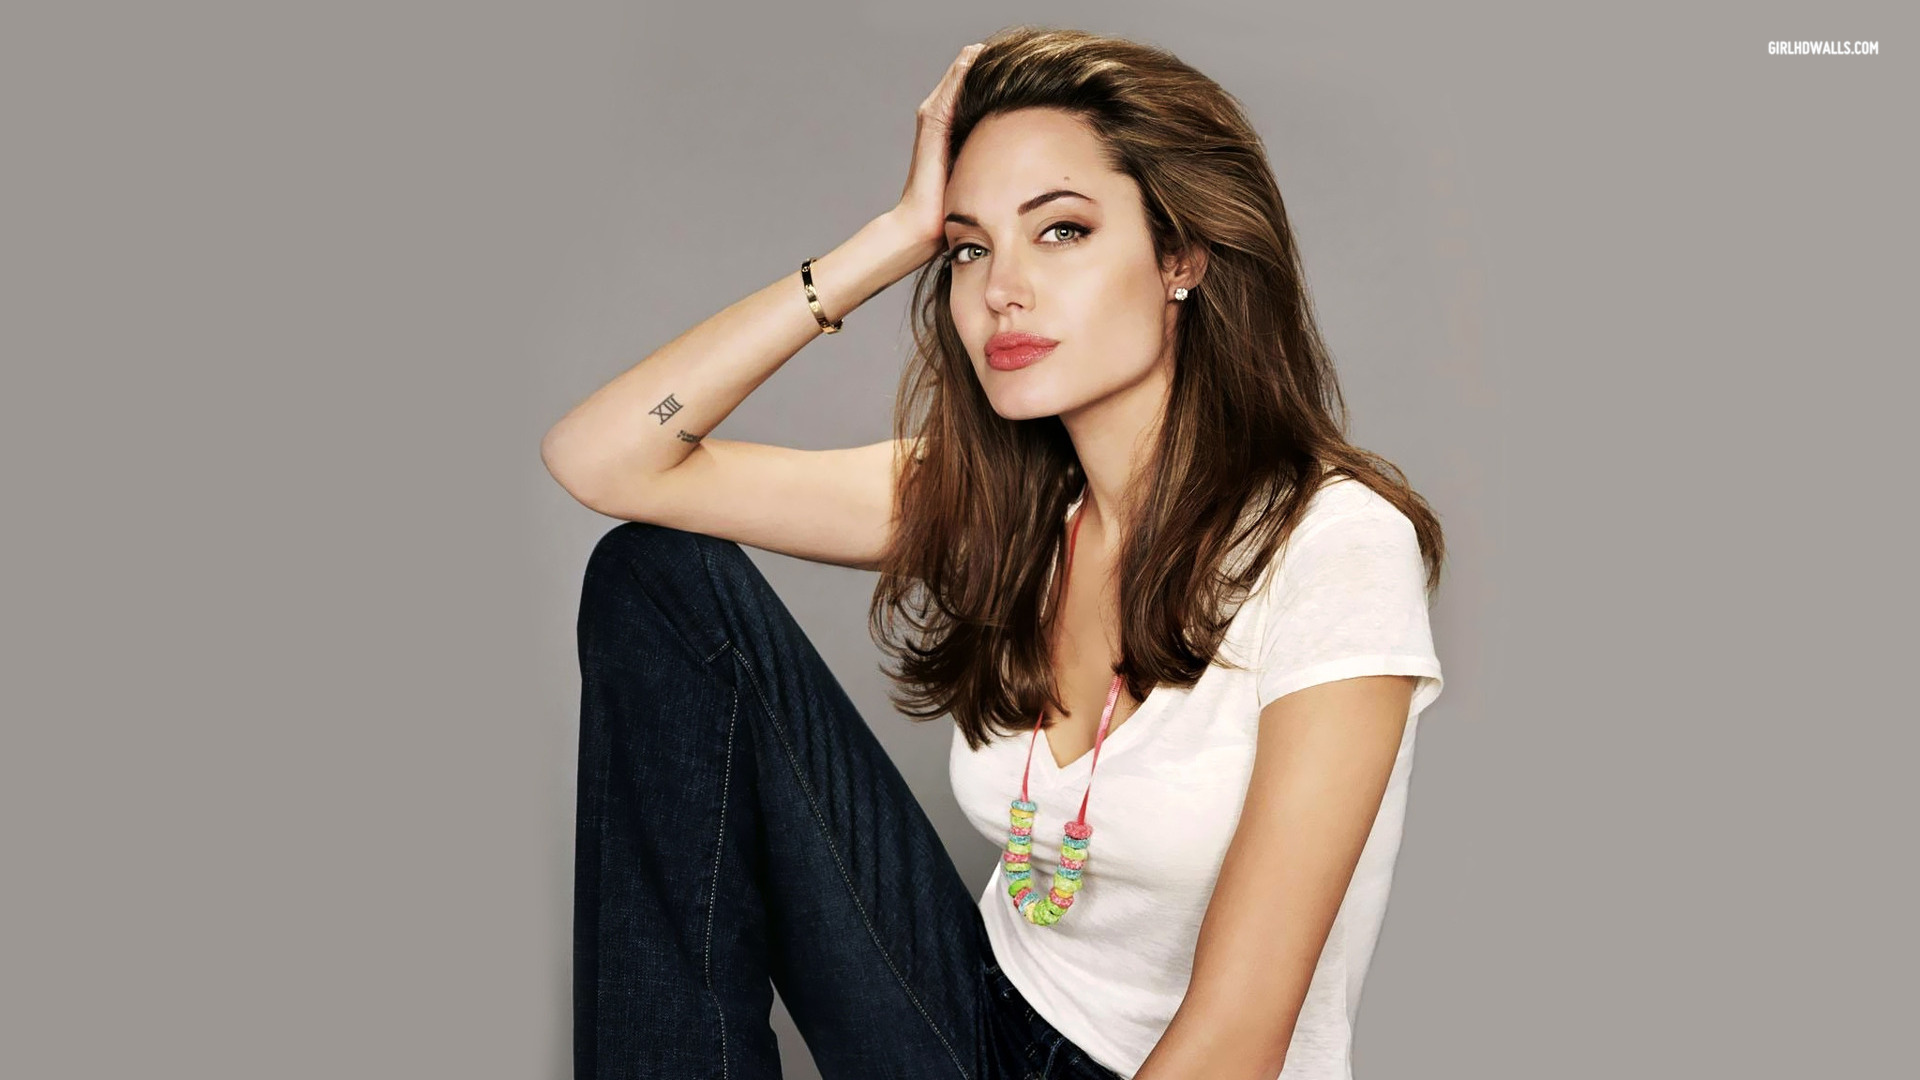 angelina jolie wallpapers, pictures, images